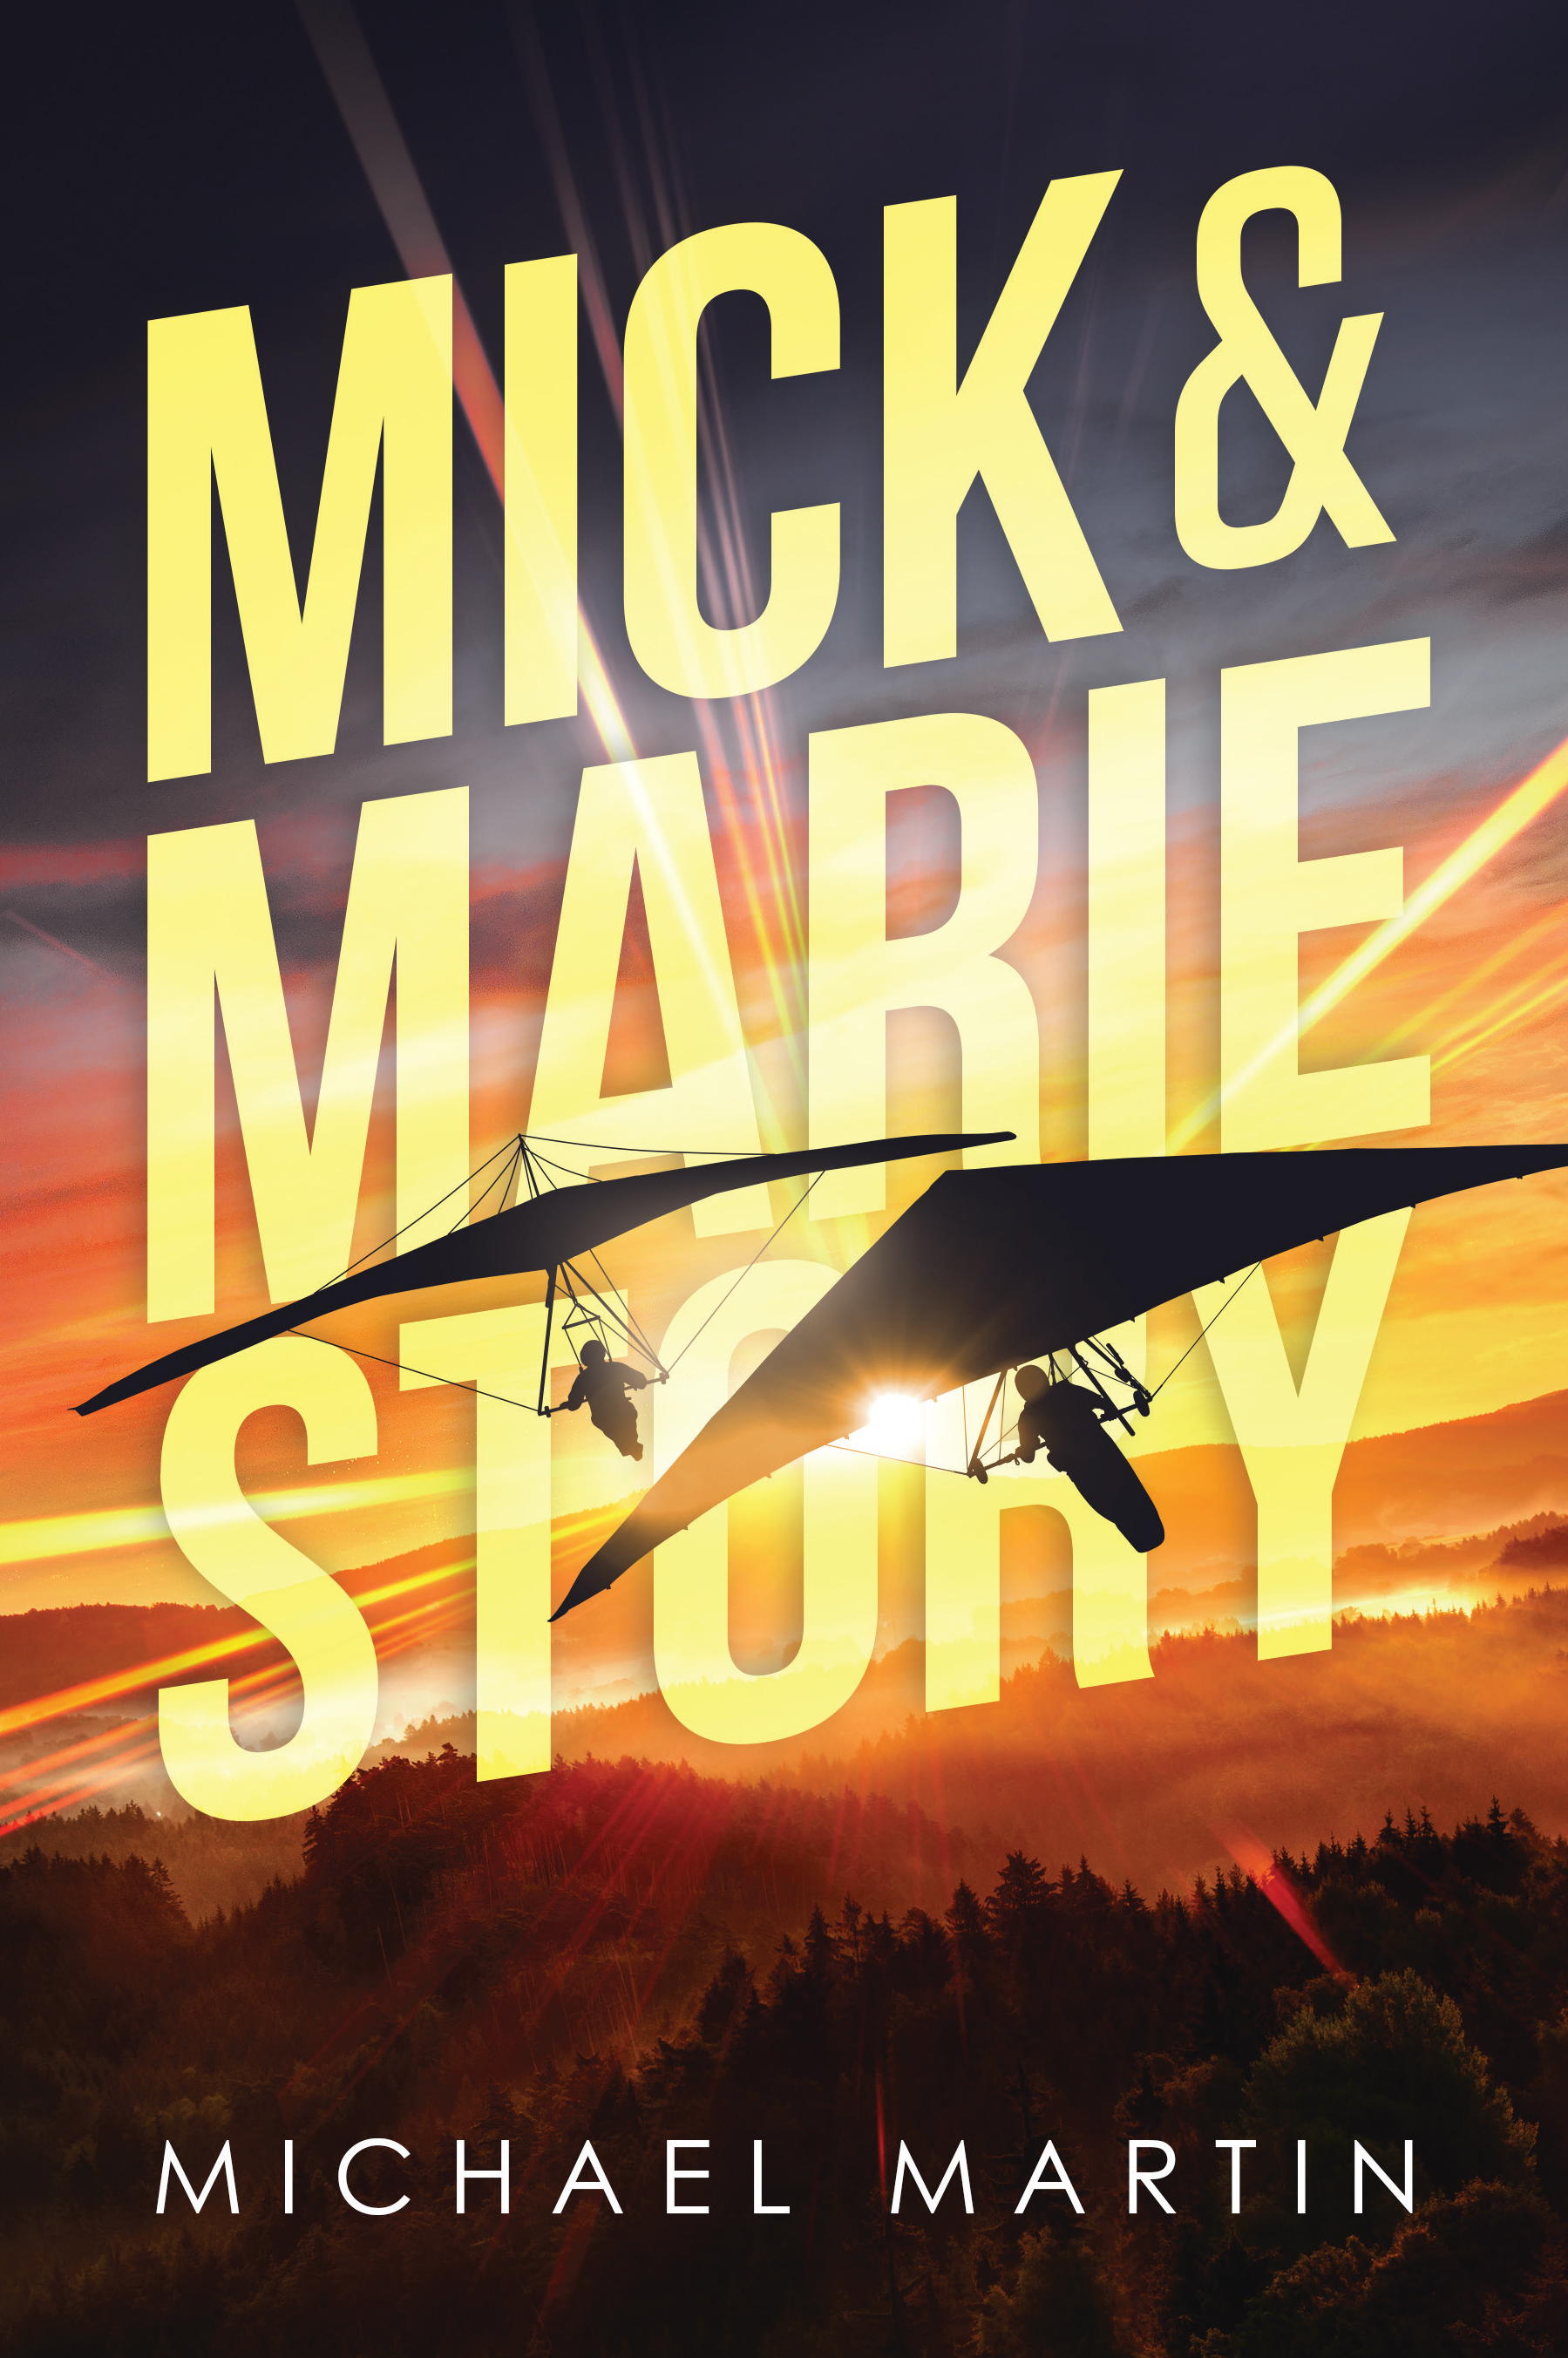 Mick and Marie Story by Michael Martin: A gripping page-turner from start to finish